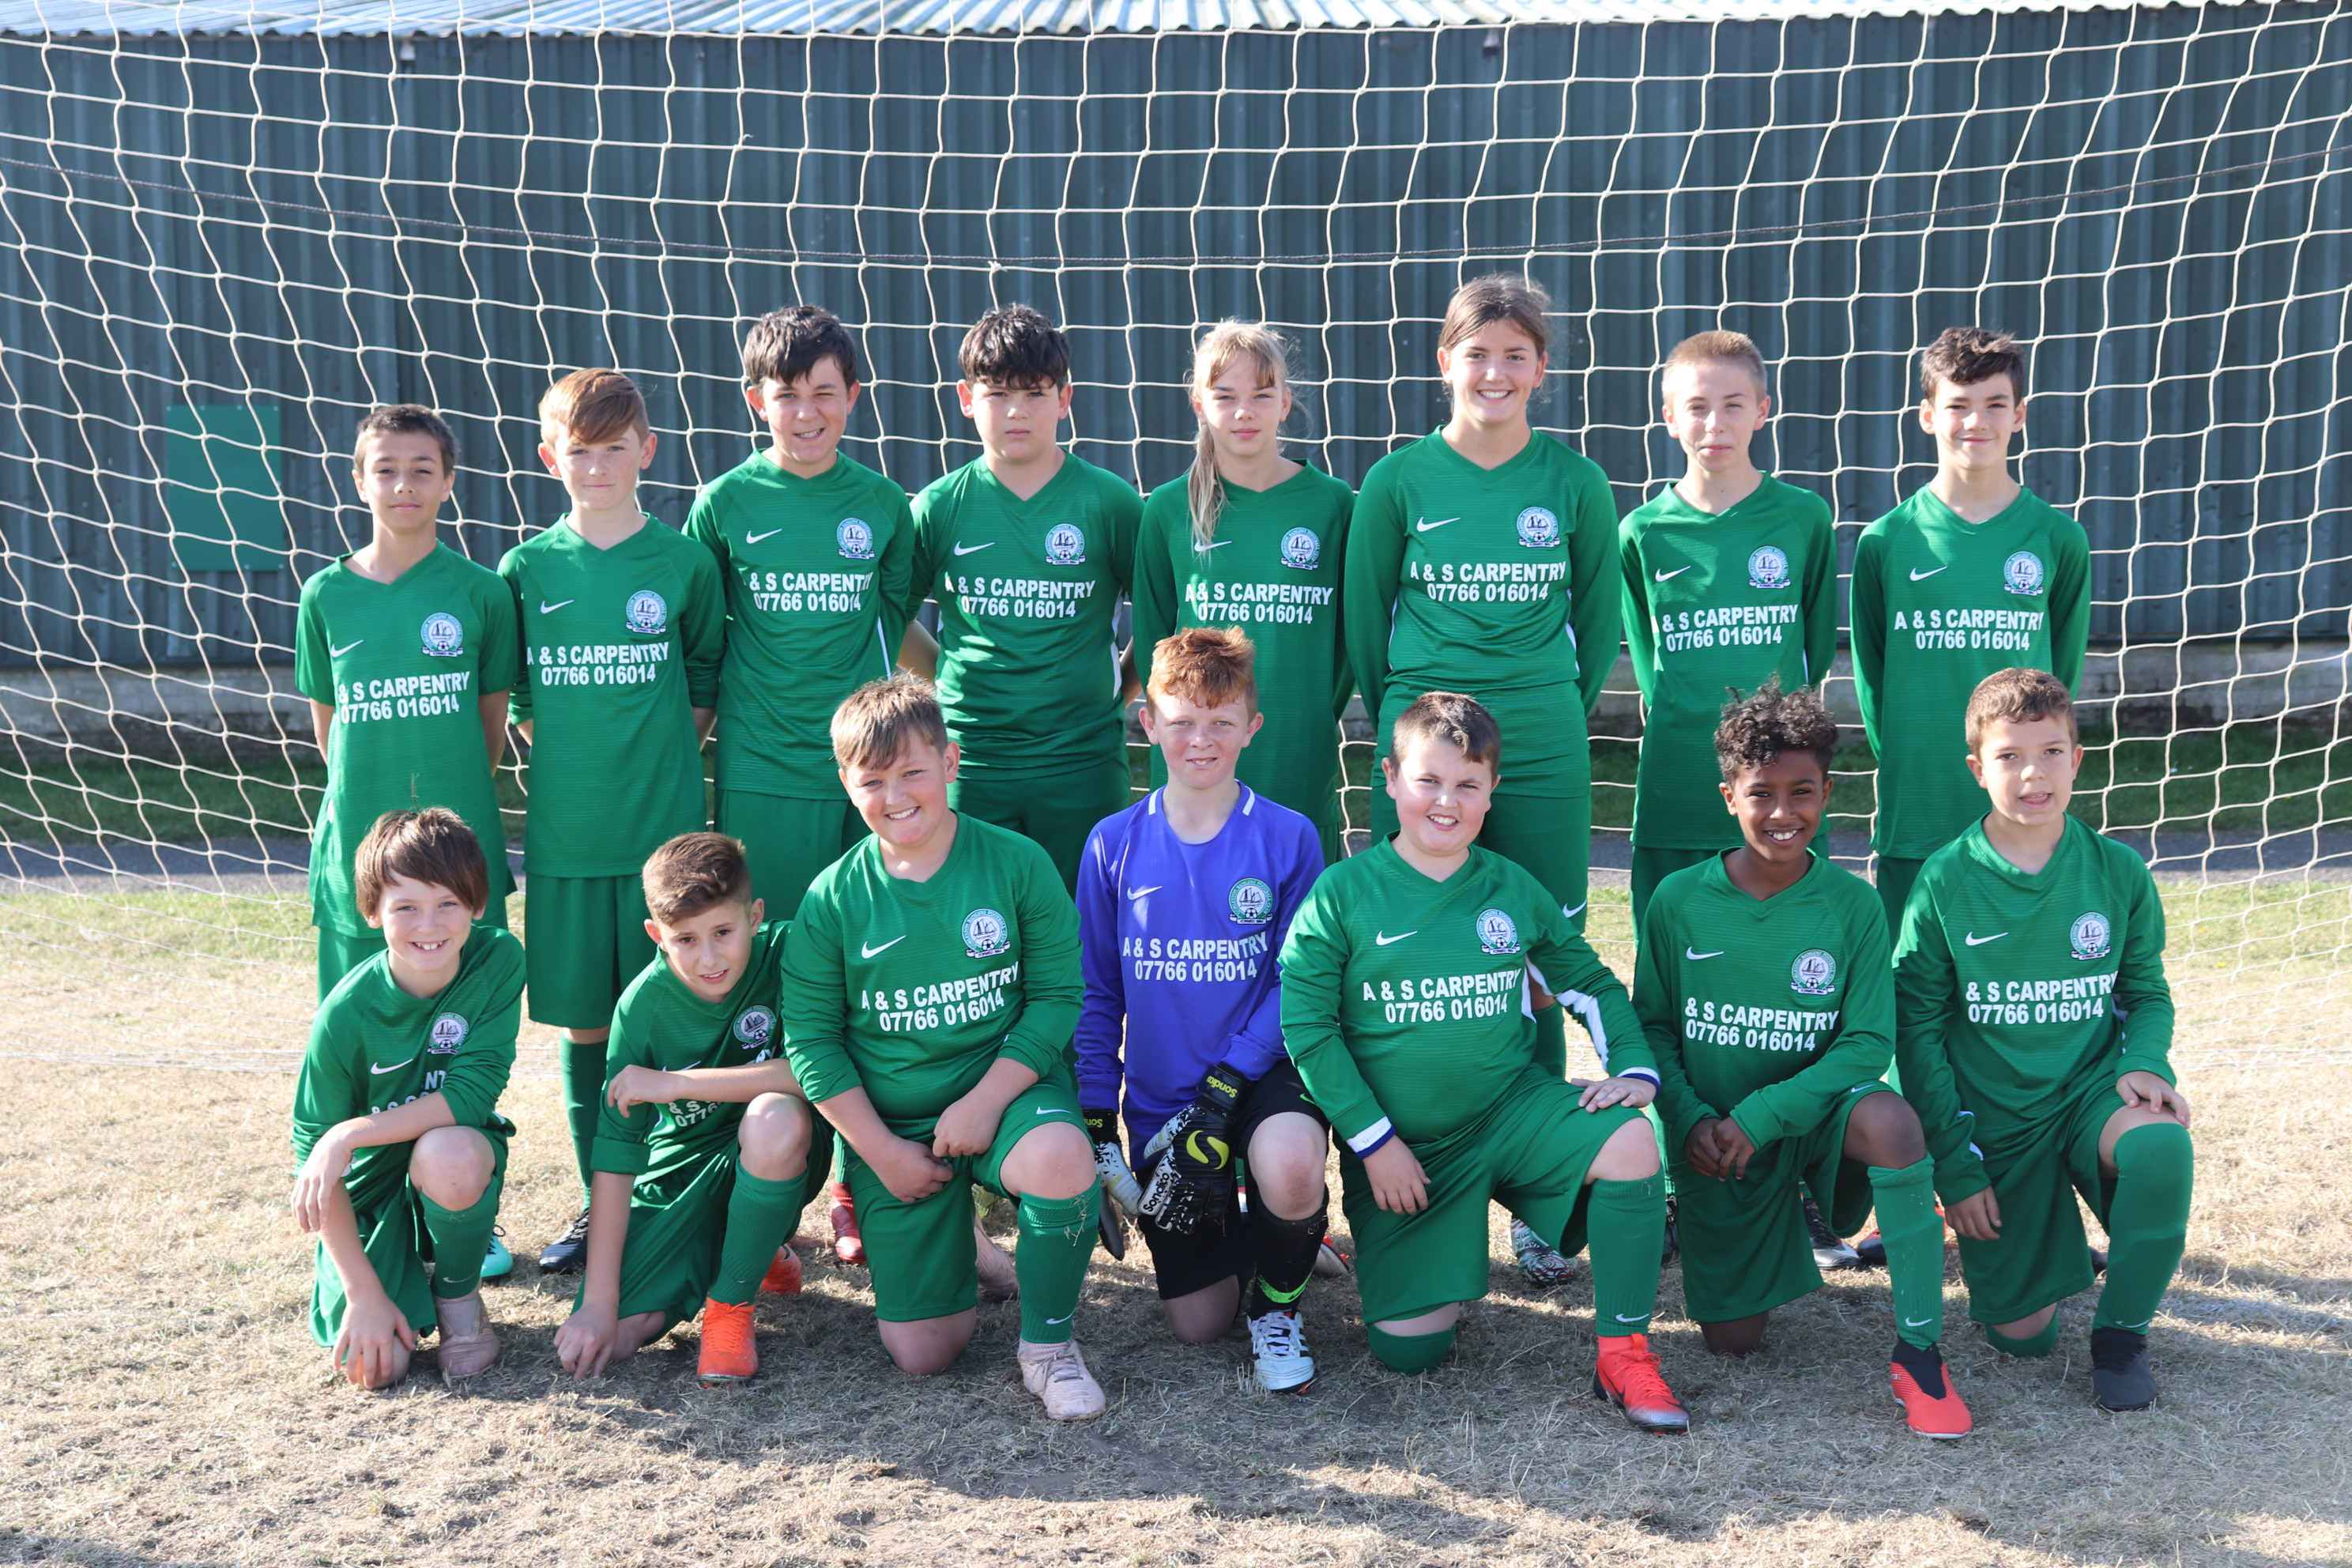 U13 Falcons Team